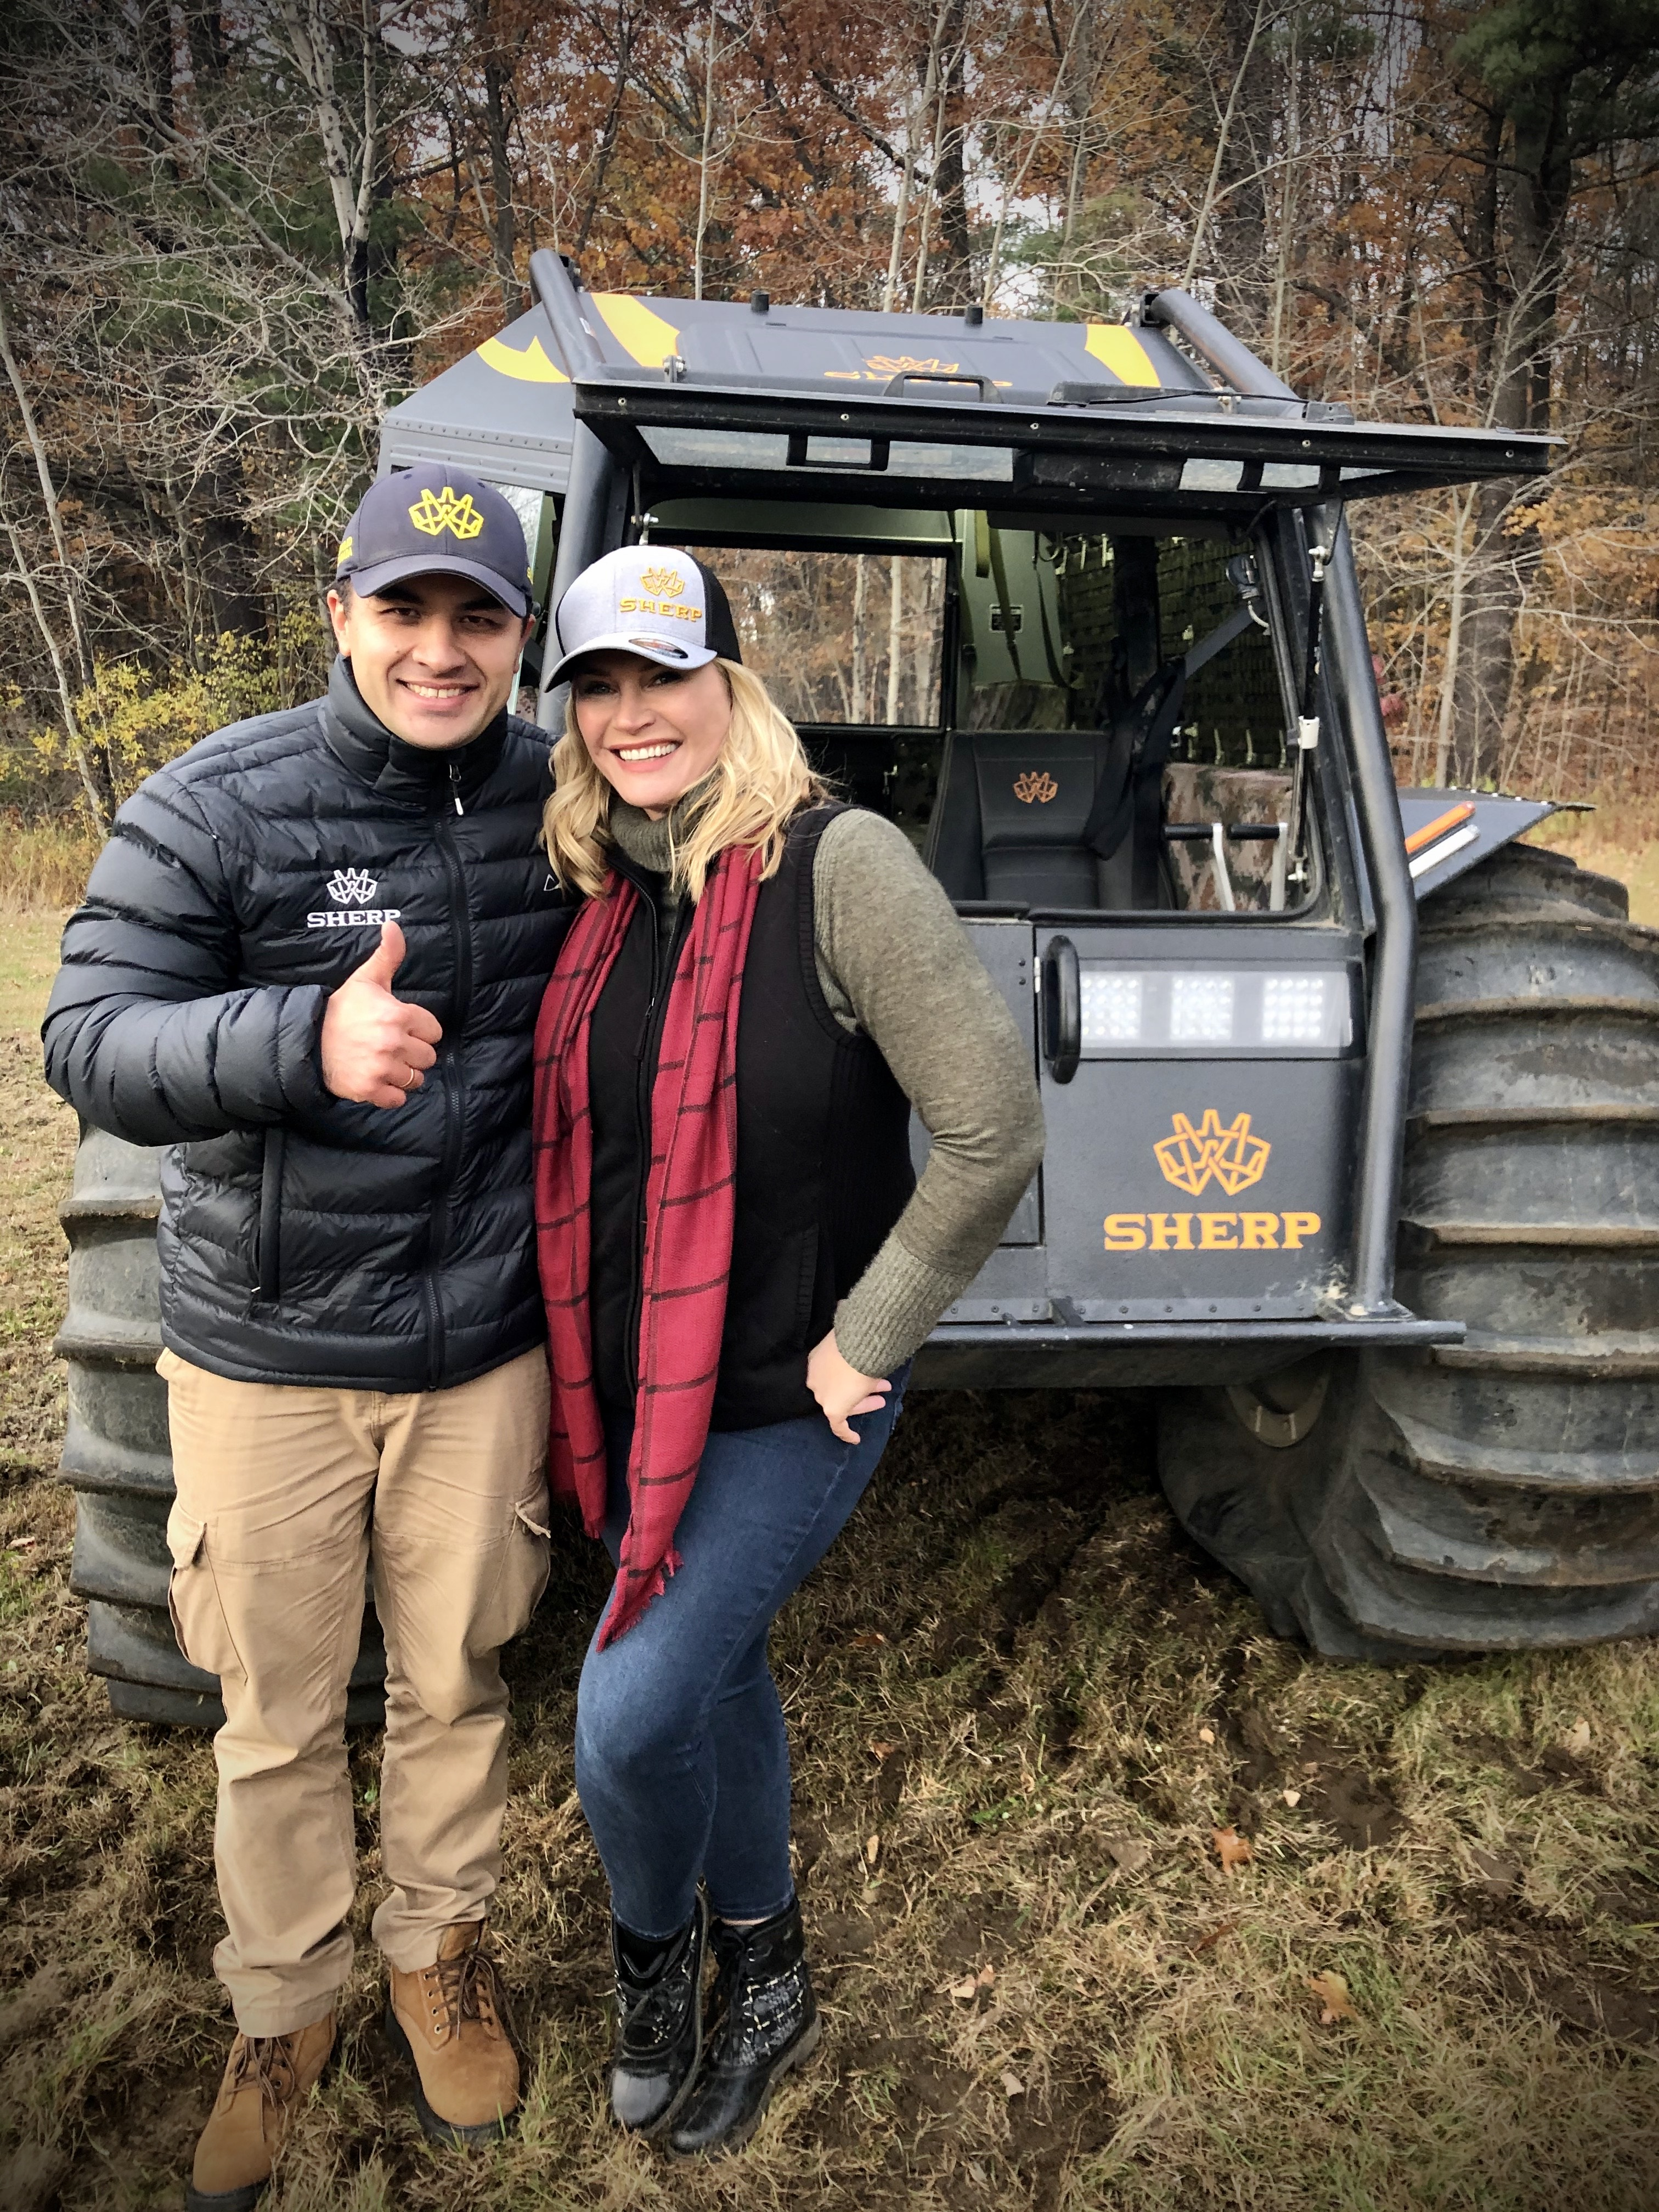 Evgeny Astakhov, Sales Manager, SHERP and Natasha Henstridge, in front of the SHERP on the set.